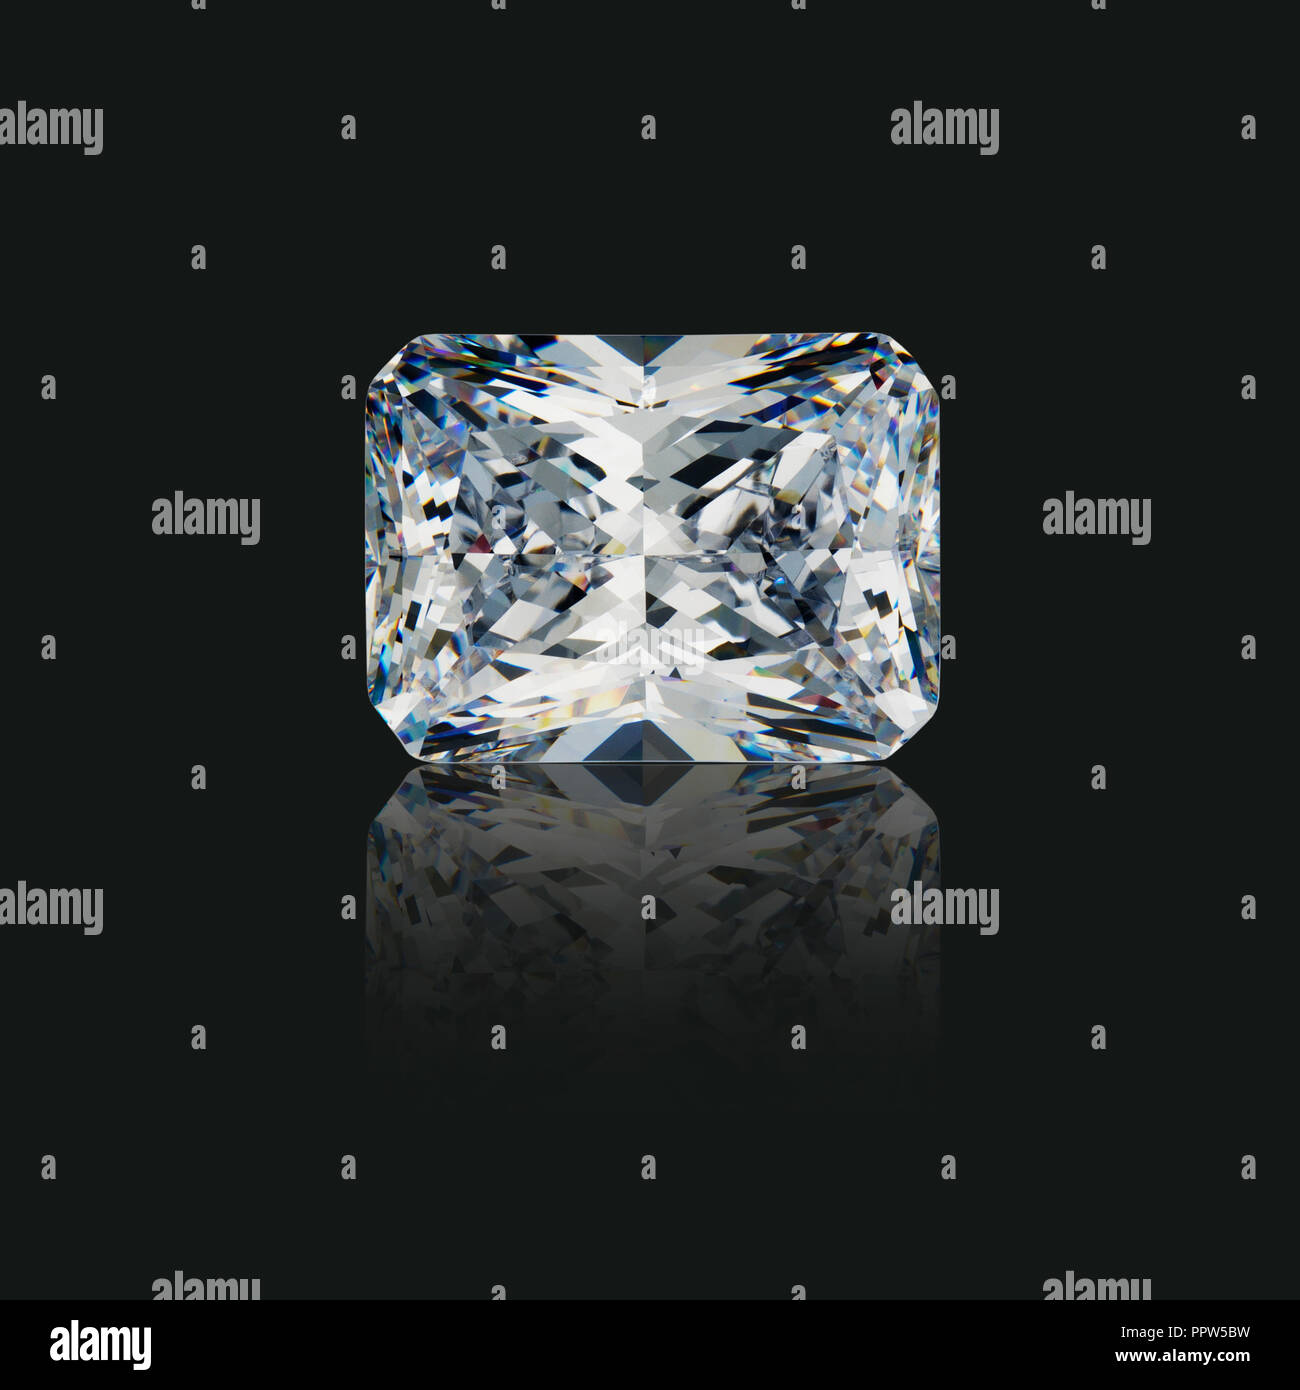 Emerald Cut Radiant Diamond Gemstone Gem - Stock Image